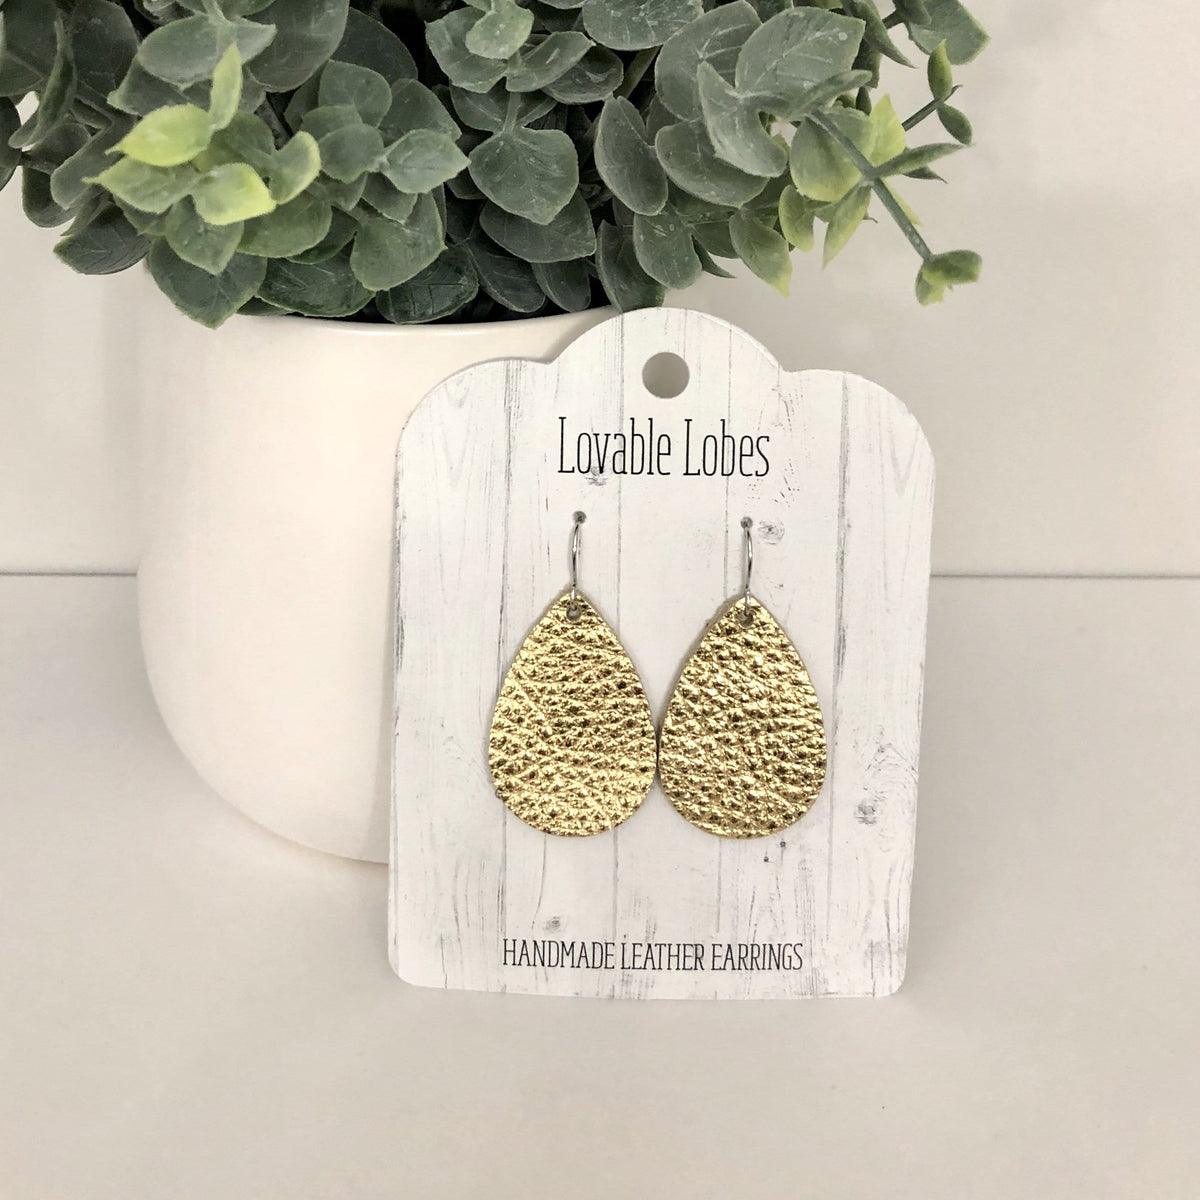 Lovable Lobes Mini Teardrop Leather Earring